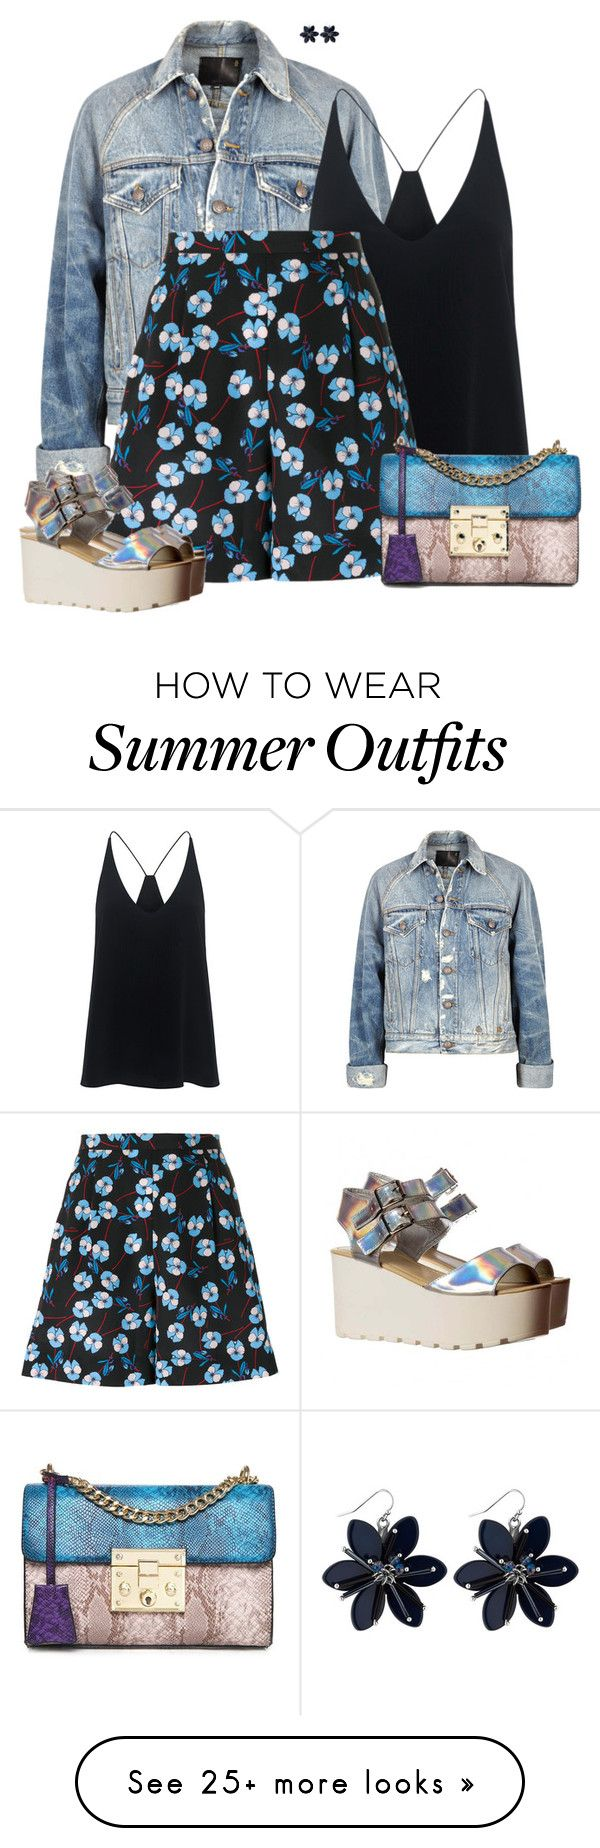 """""""Outfit Only"""" by sherry7411 on Polyvore featuring R13, TIBI and Sonia ..."""